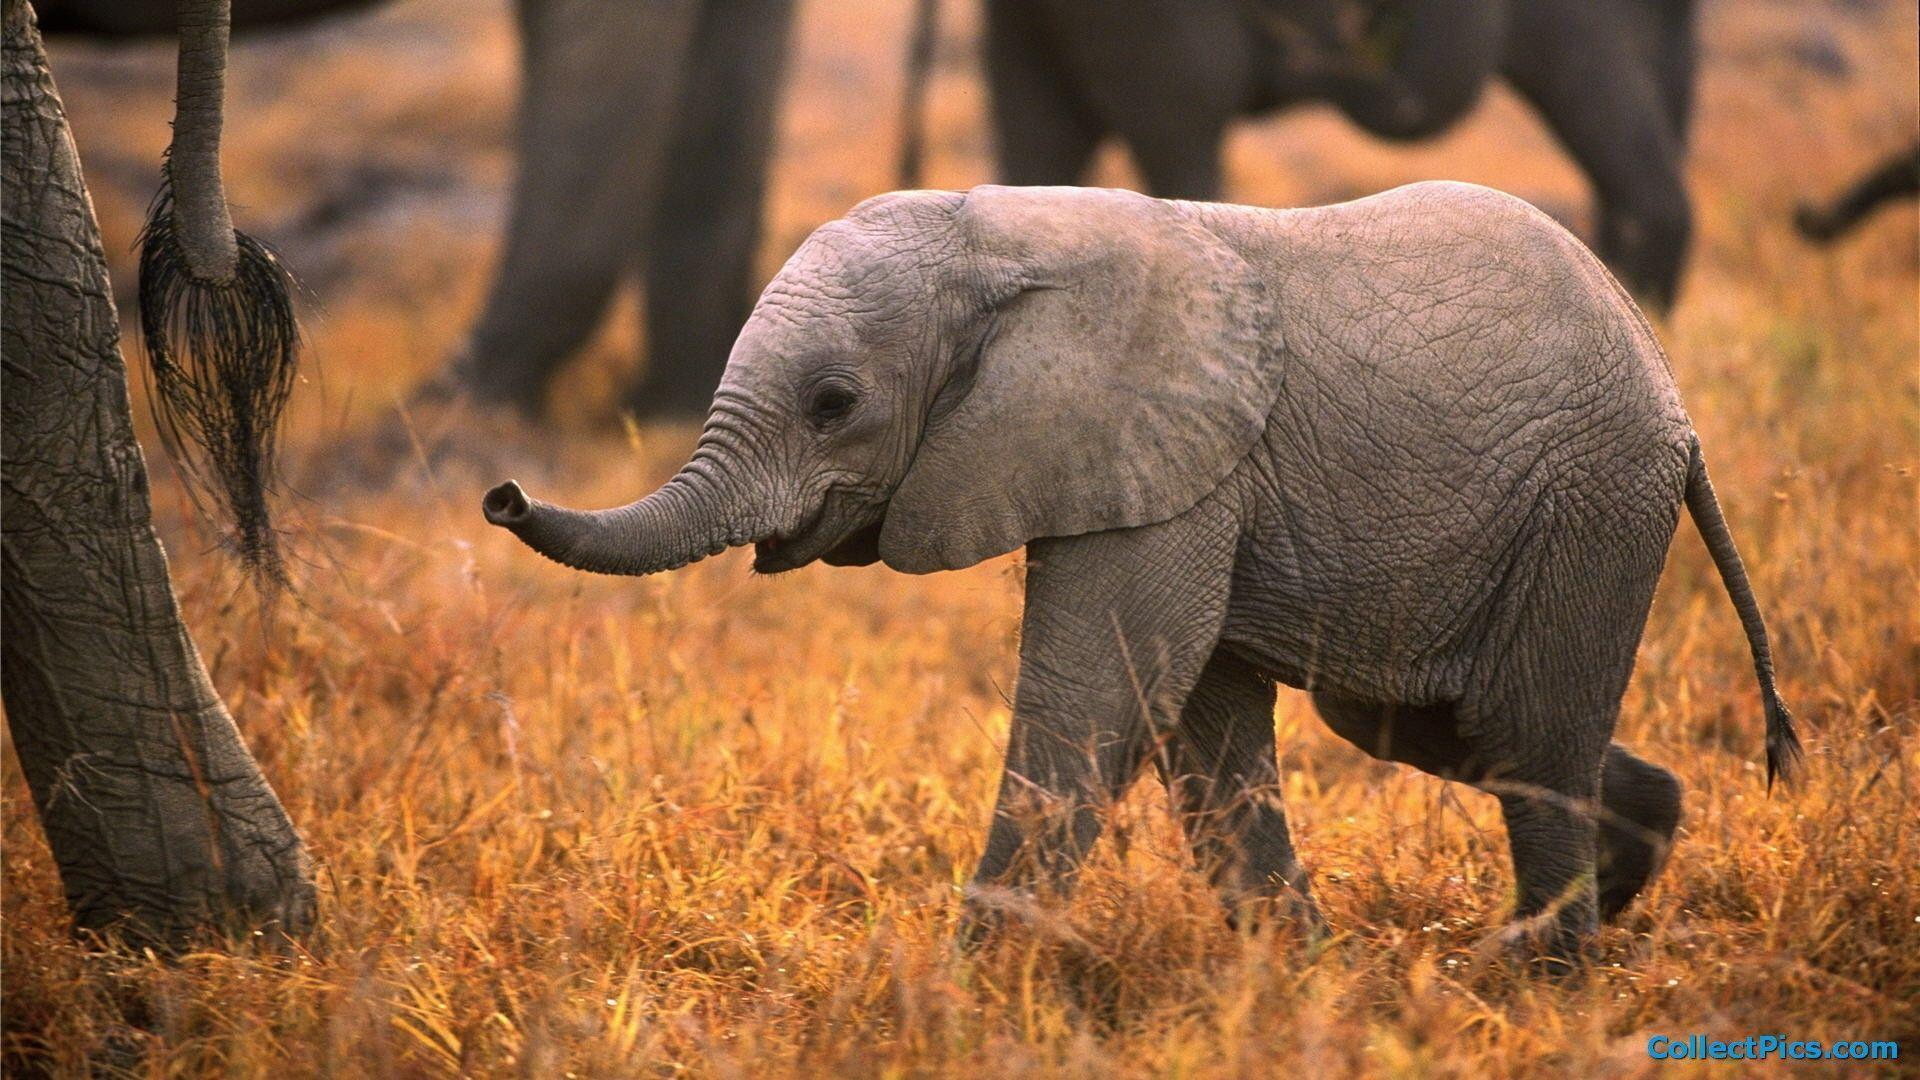 Baby Elephant Wallpapers Top Free Baby Elephant Backgrounds Wallpaperaccess